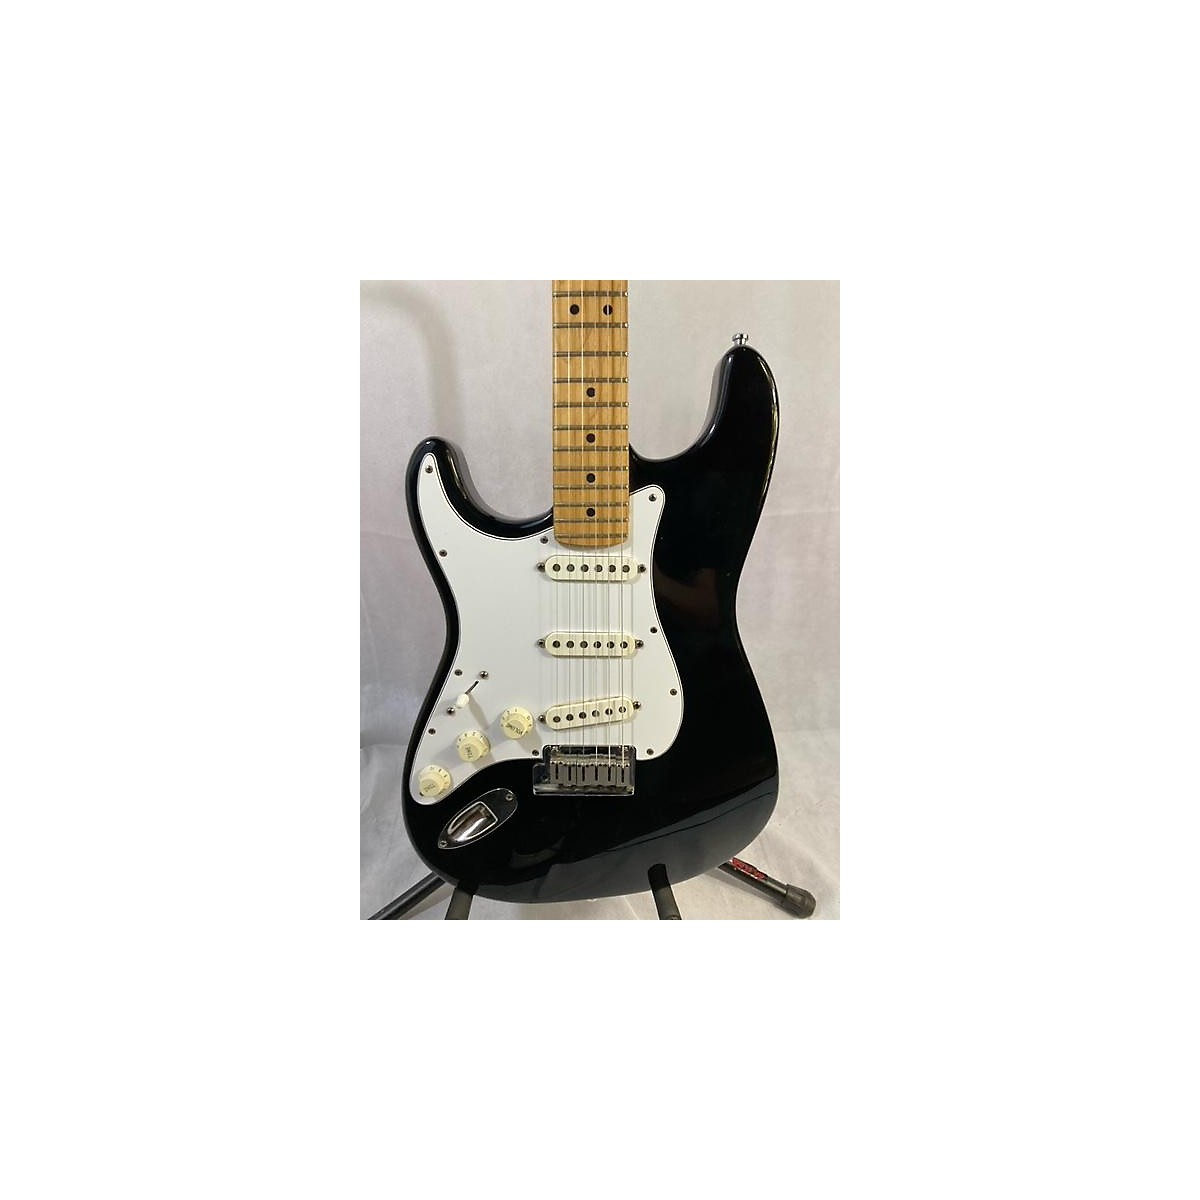 Fender 1989 Stratocaster Electric Guitar